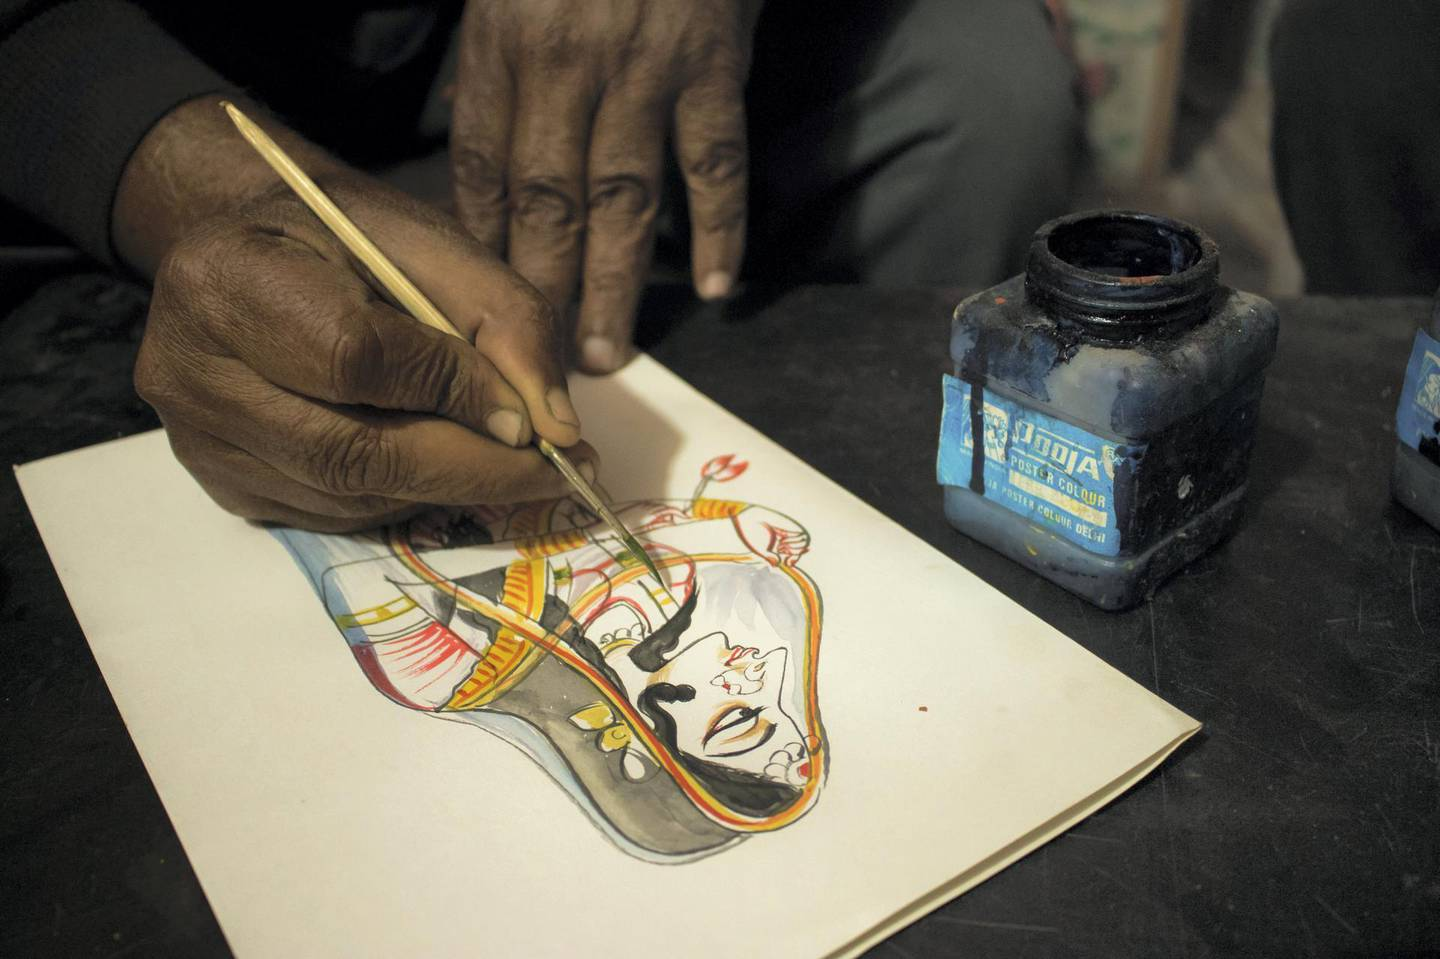 Anil Vyas, who has made over 10,000 Bani Thani paintings and mastered the art, doesn't use a pencil and eraser while sketching. Courtesy: Sanket Jain